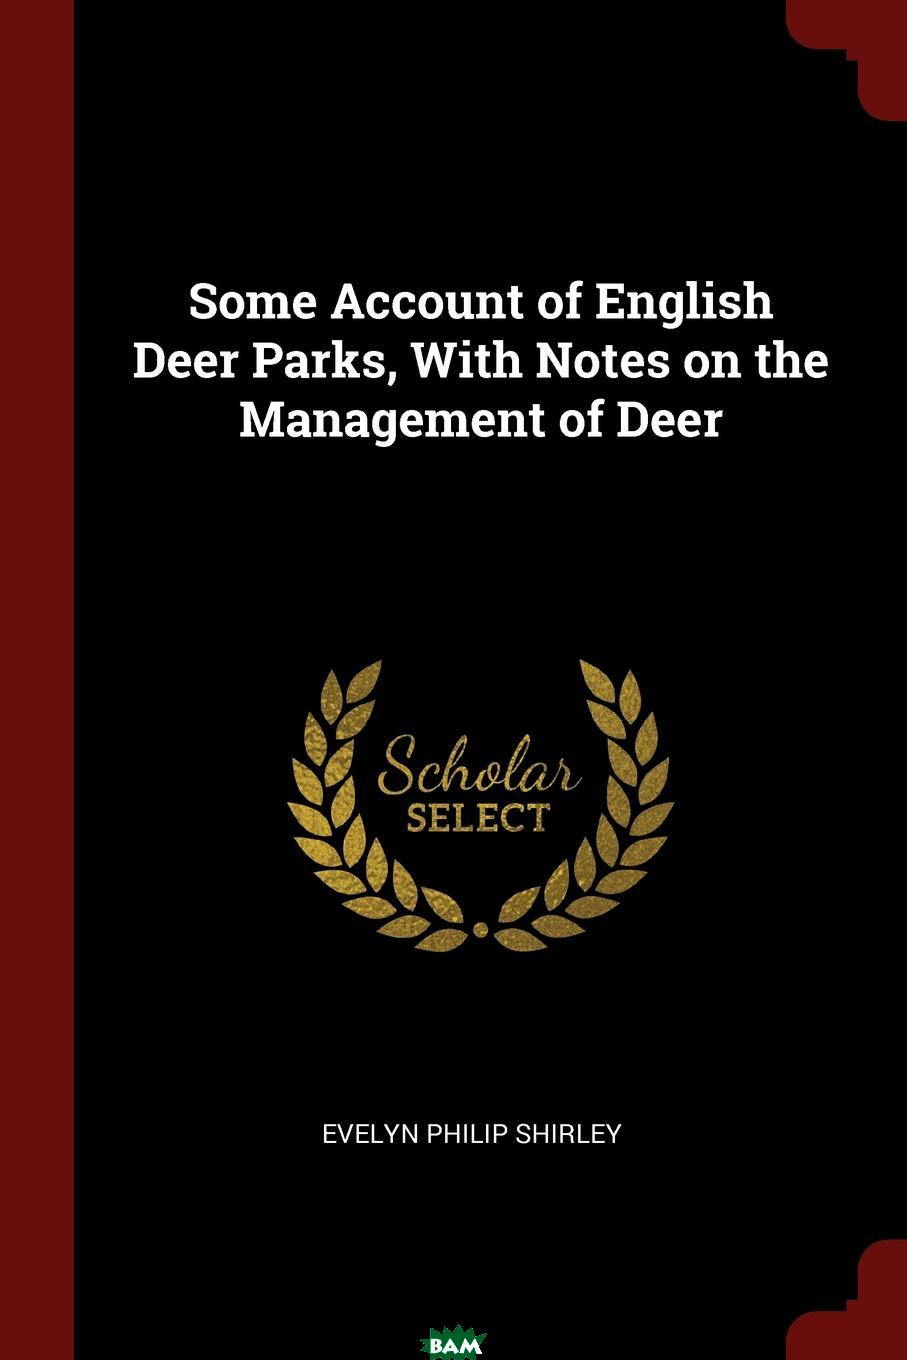 Купить Some Account of English Deer Parks, With Notes on the Management of Deer, Evelyn Philip Shirley, 9781376071047